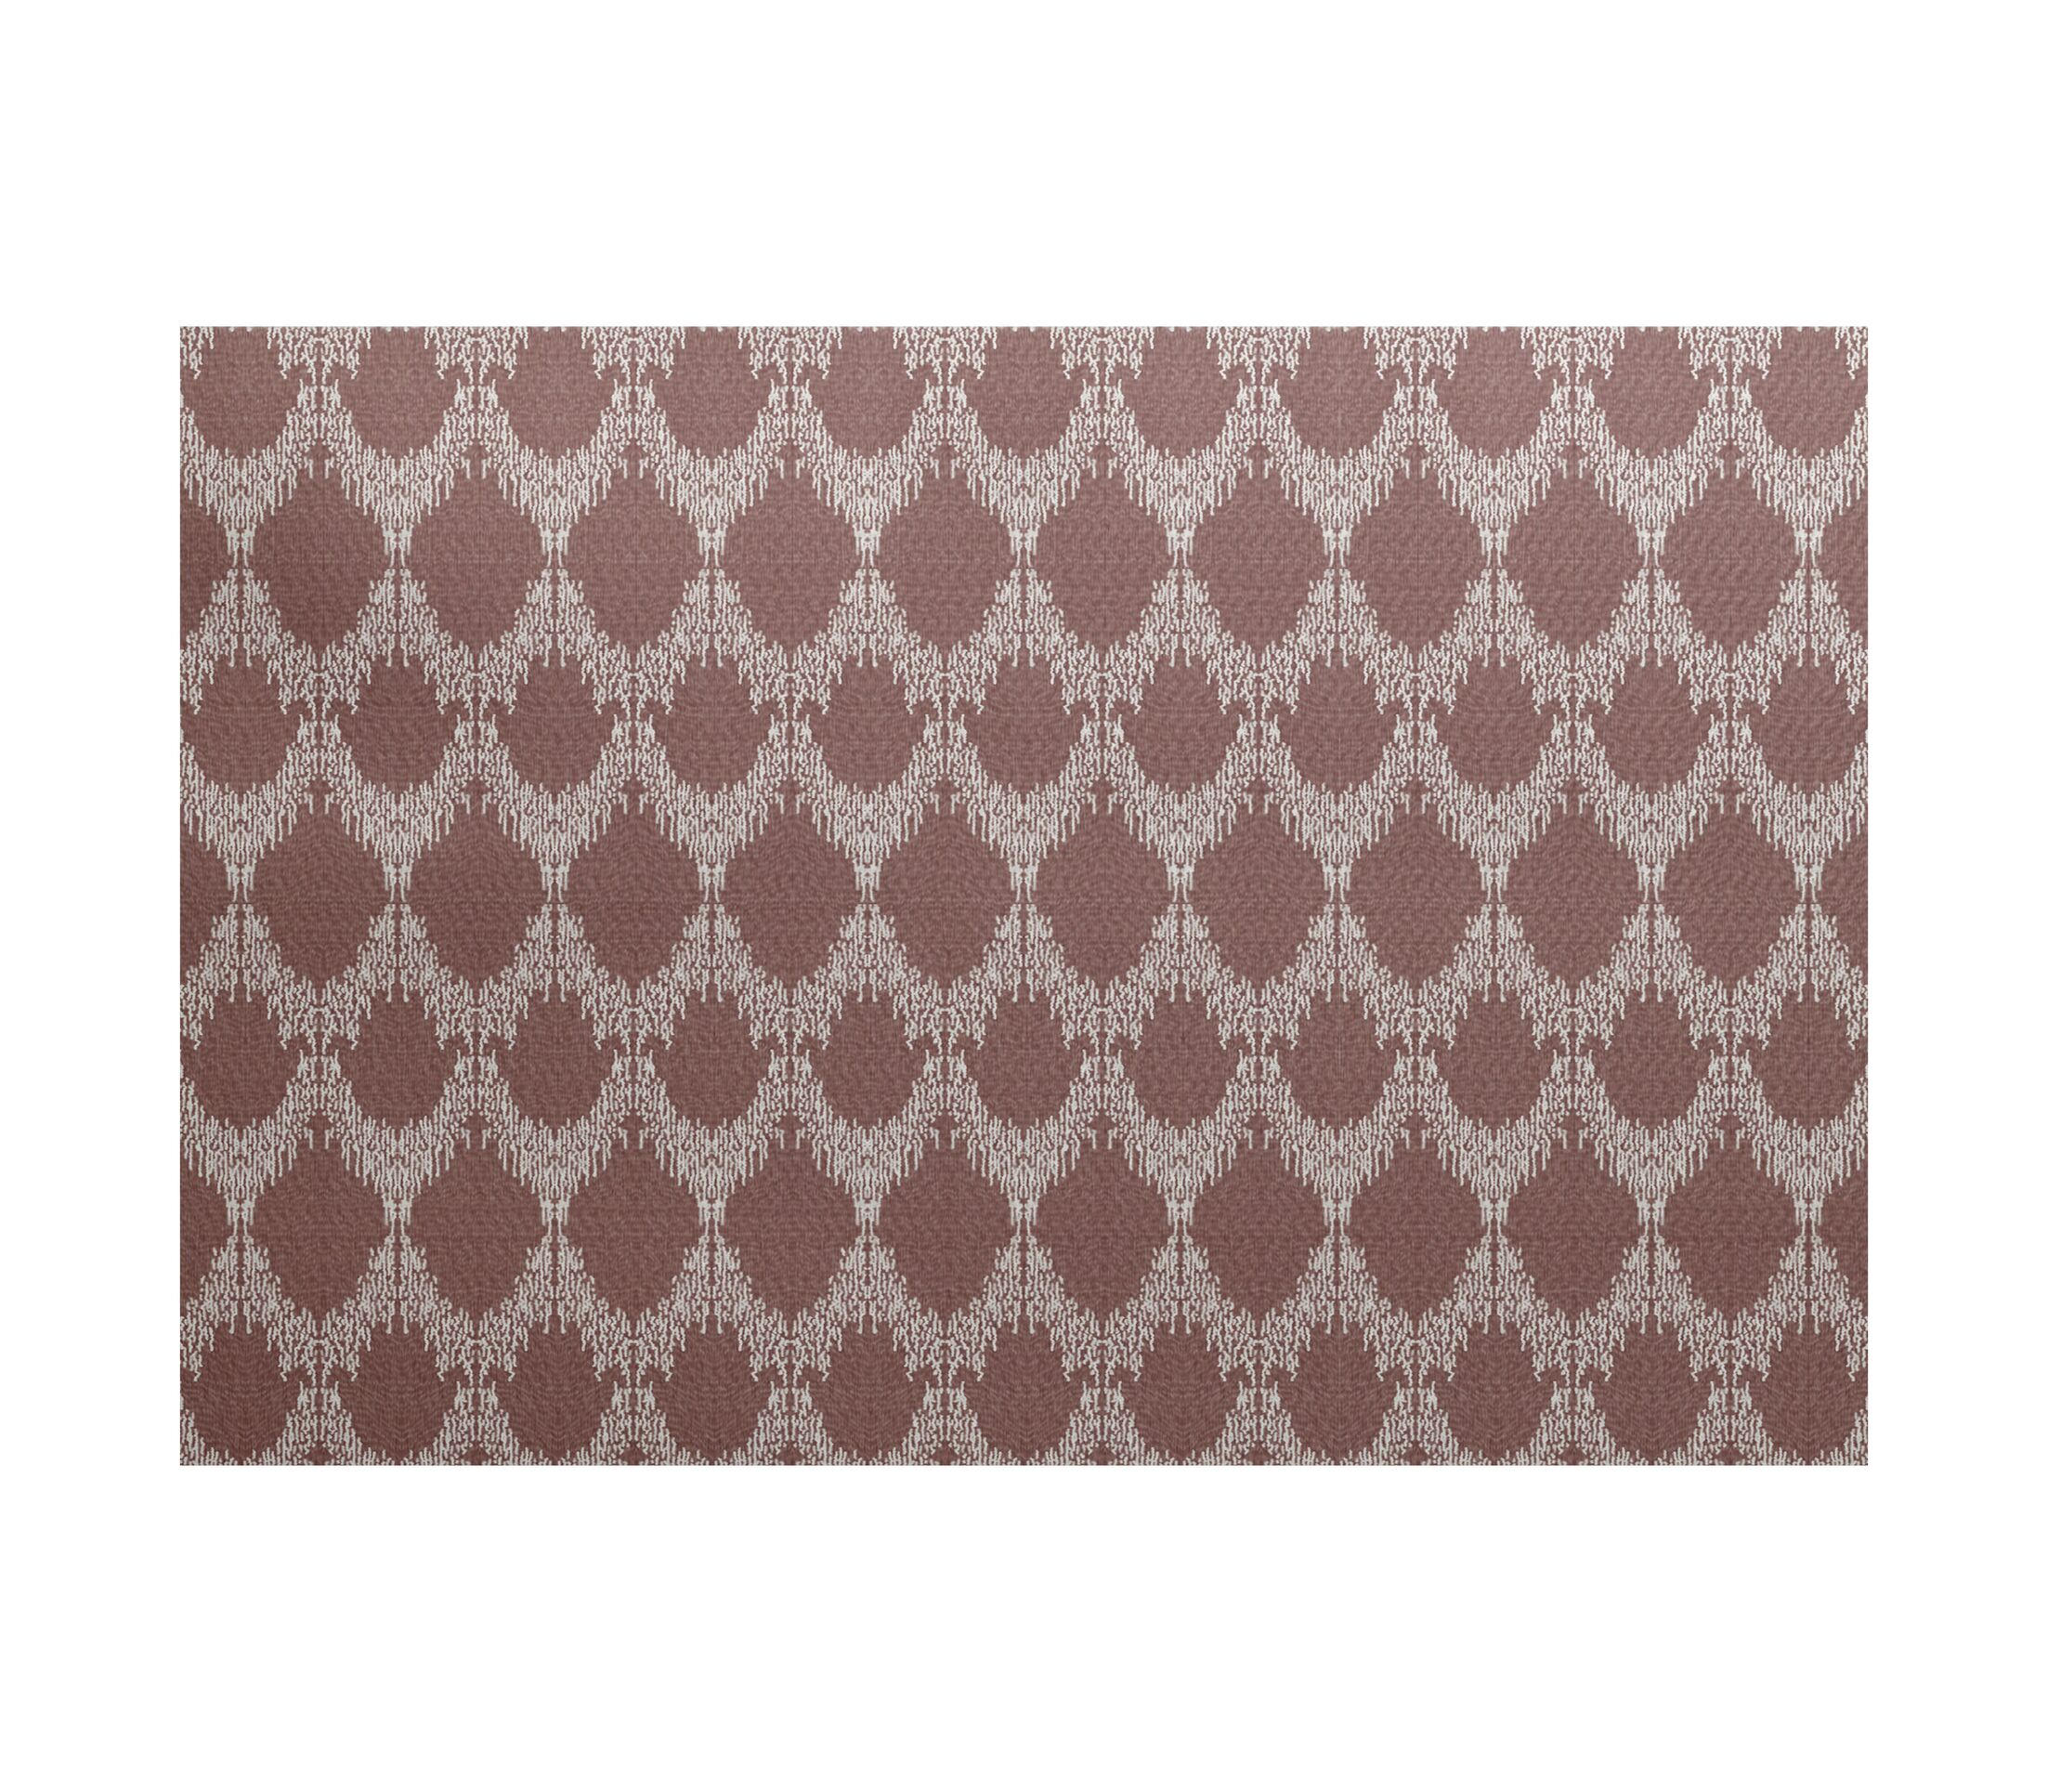 Lassiter Flat Woven Geometric Maroon Area Rug Rug Size: Rectangle 3' x 5'